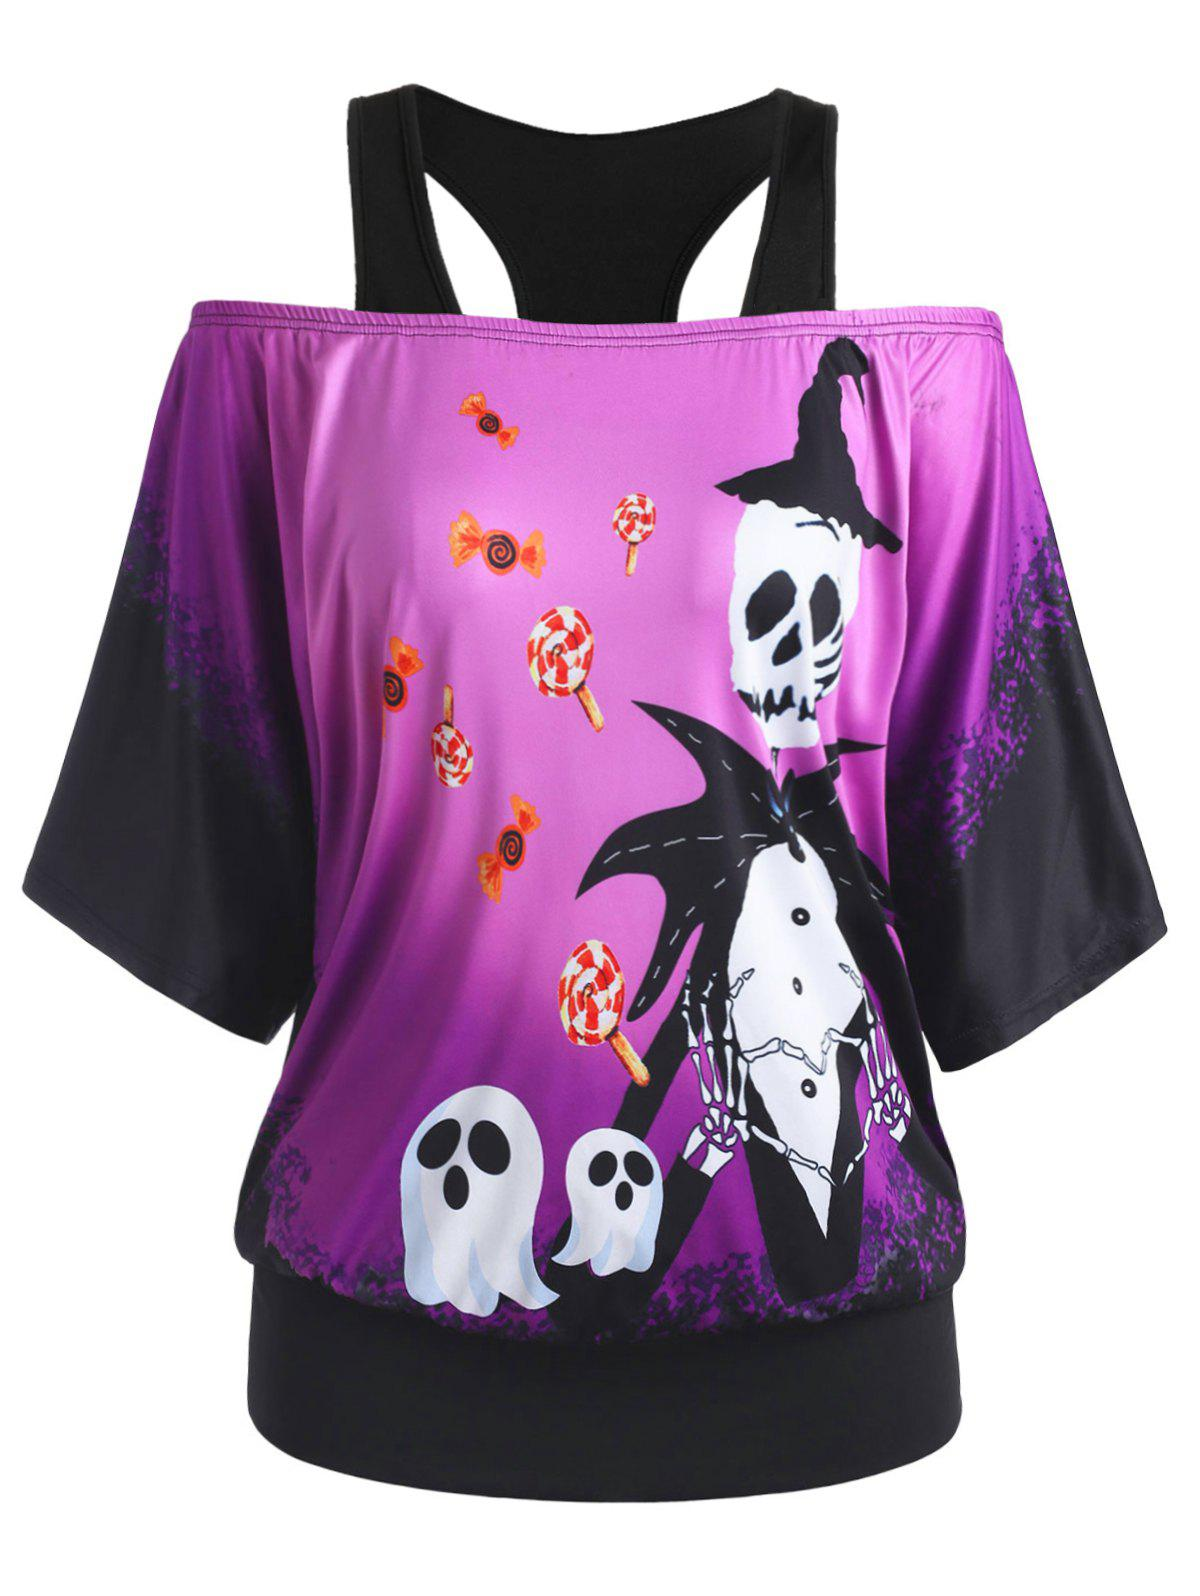 Skull Ghost Candy Print Open Shoulder Halloween Plus Size Top - PURPLE 5X